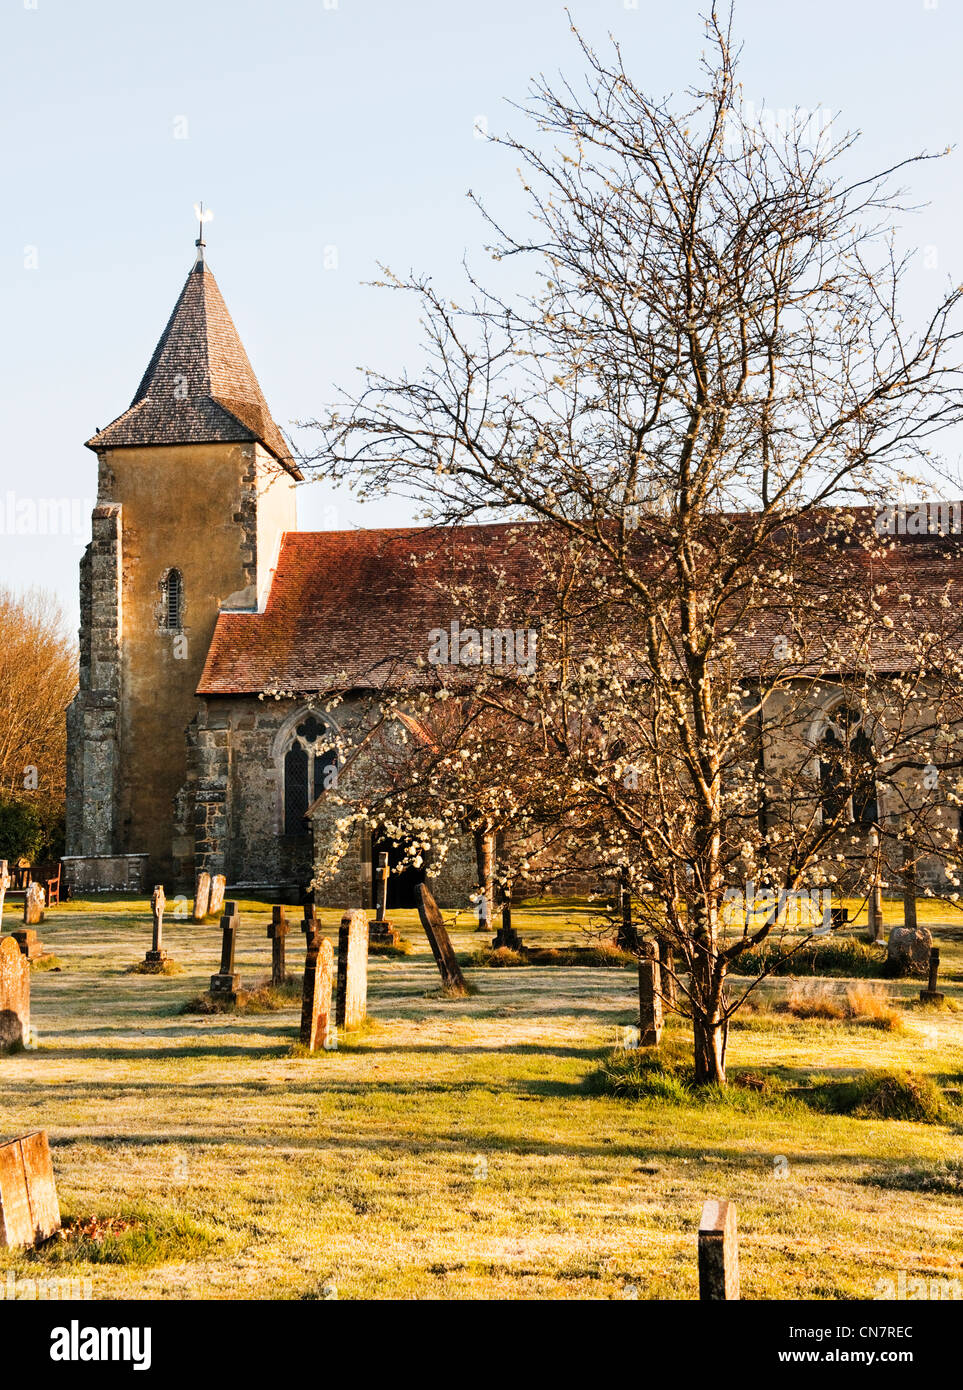 St Georges Church, Trotton, West Sussex in the early morning with early Spring blossom and slight frost on the ground. - Stock Image